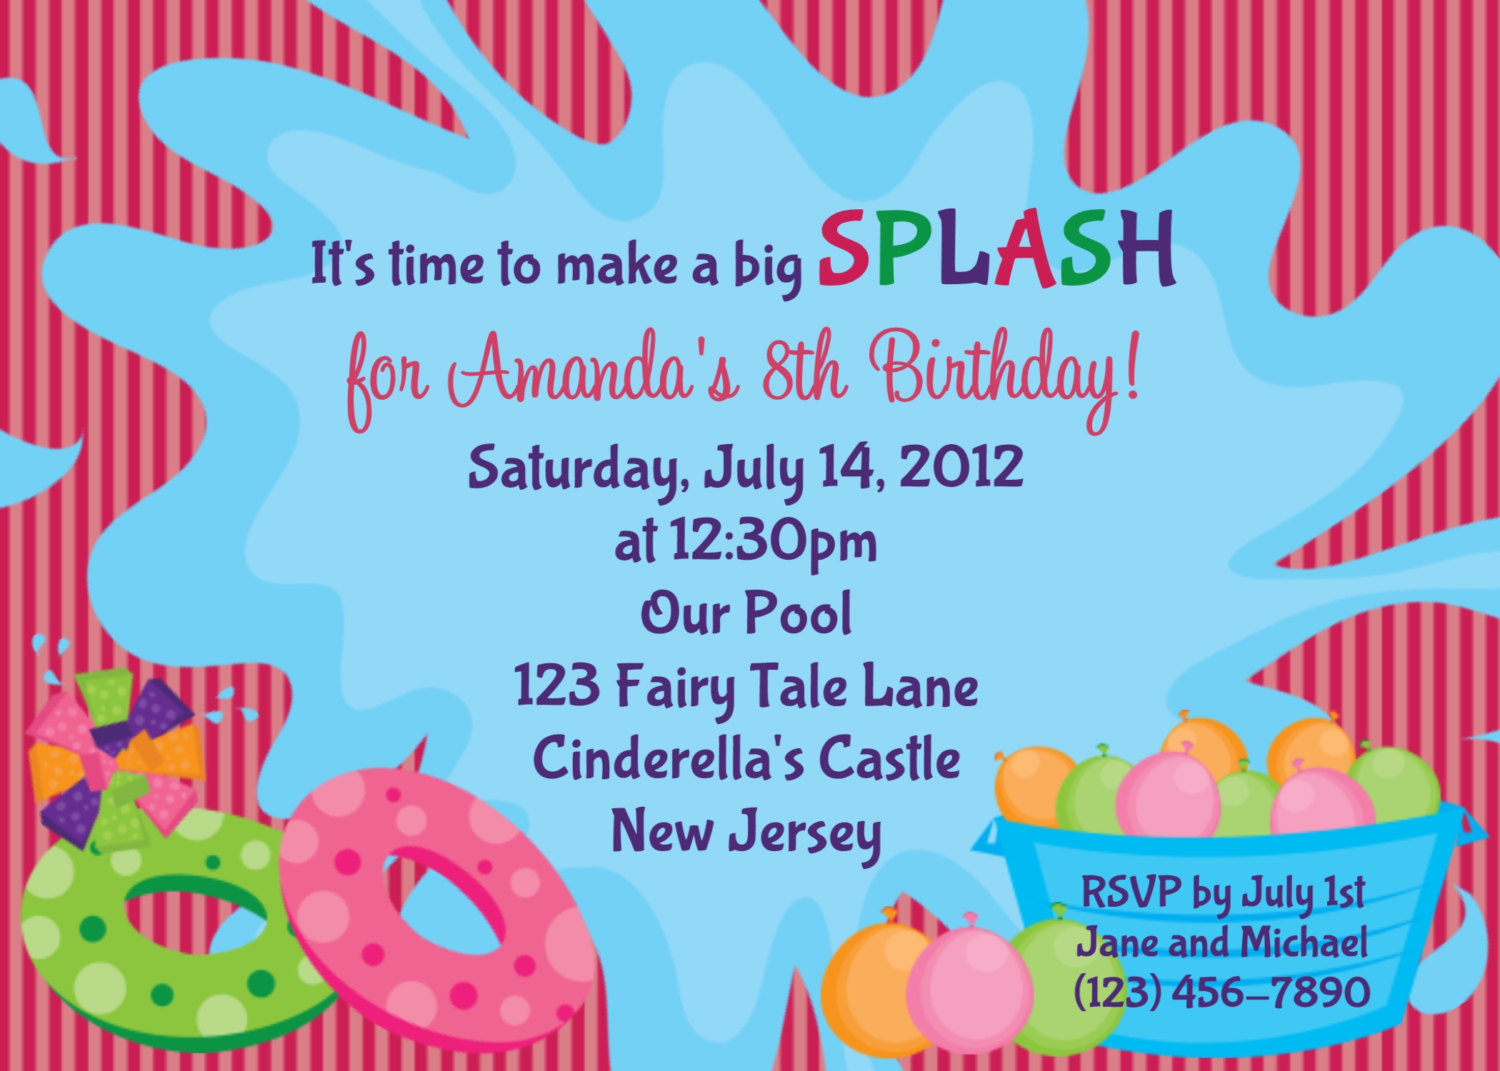 14th birthday invitation templates ; il_fullxfull